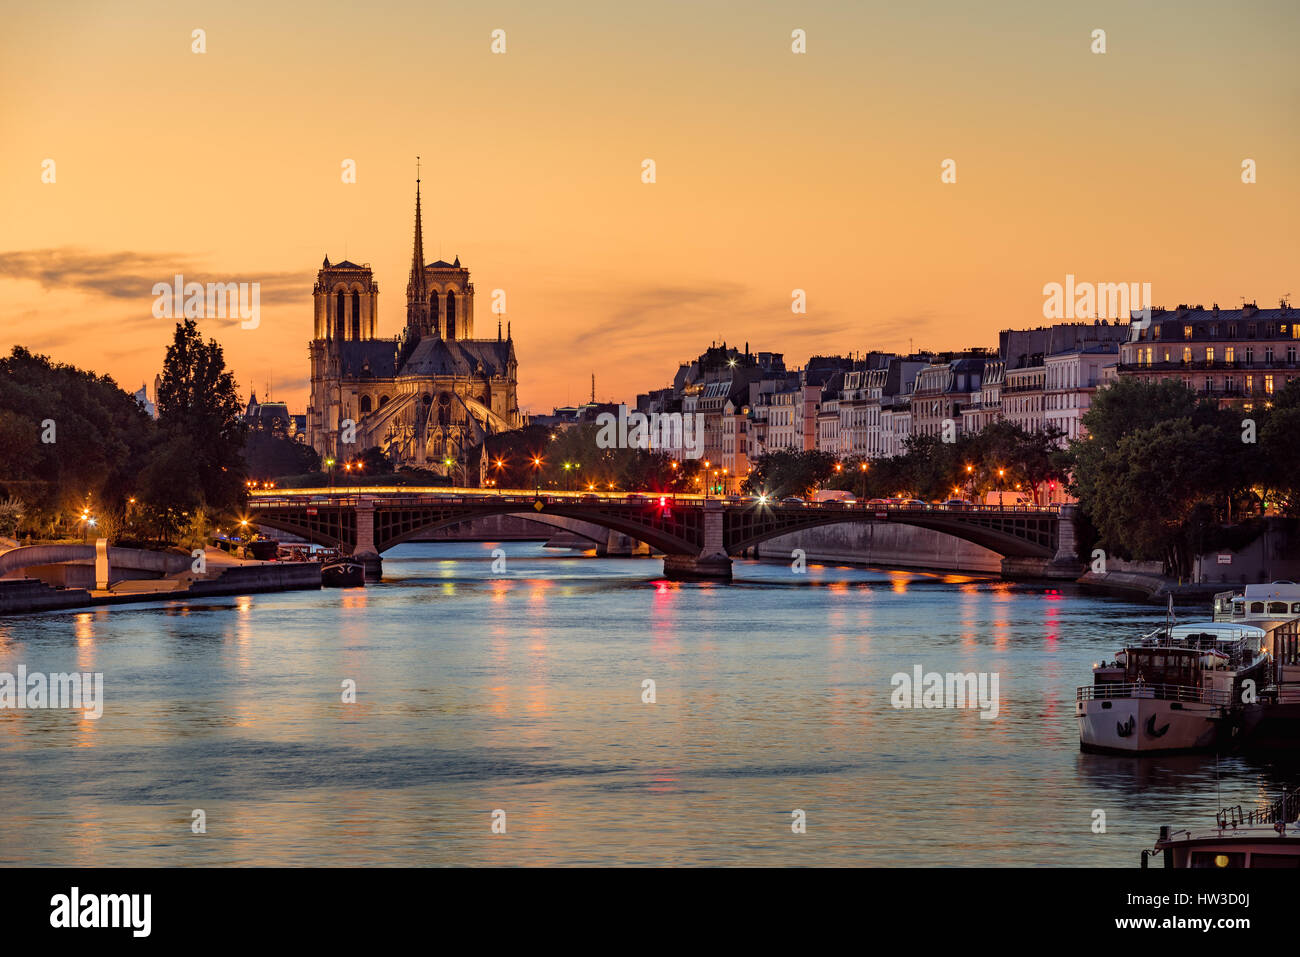 Notre Dame de Paris Cathedral, Ile Saint Louis and the Seine River at sunset. Summer evening with the Sully Bridge - Stock Image